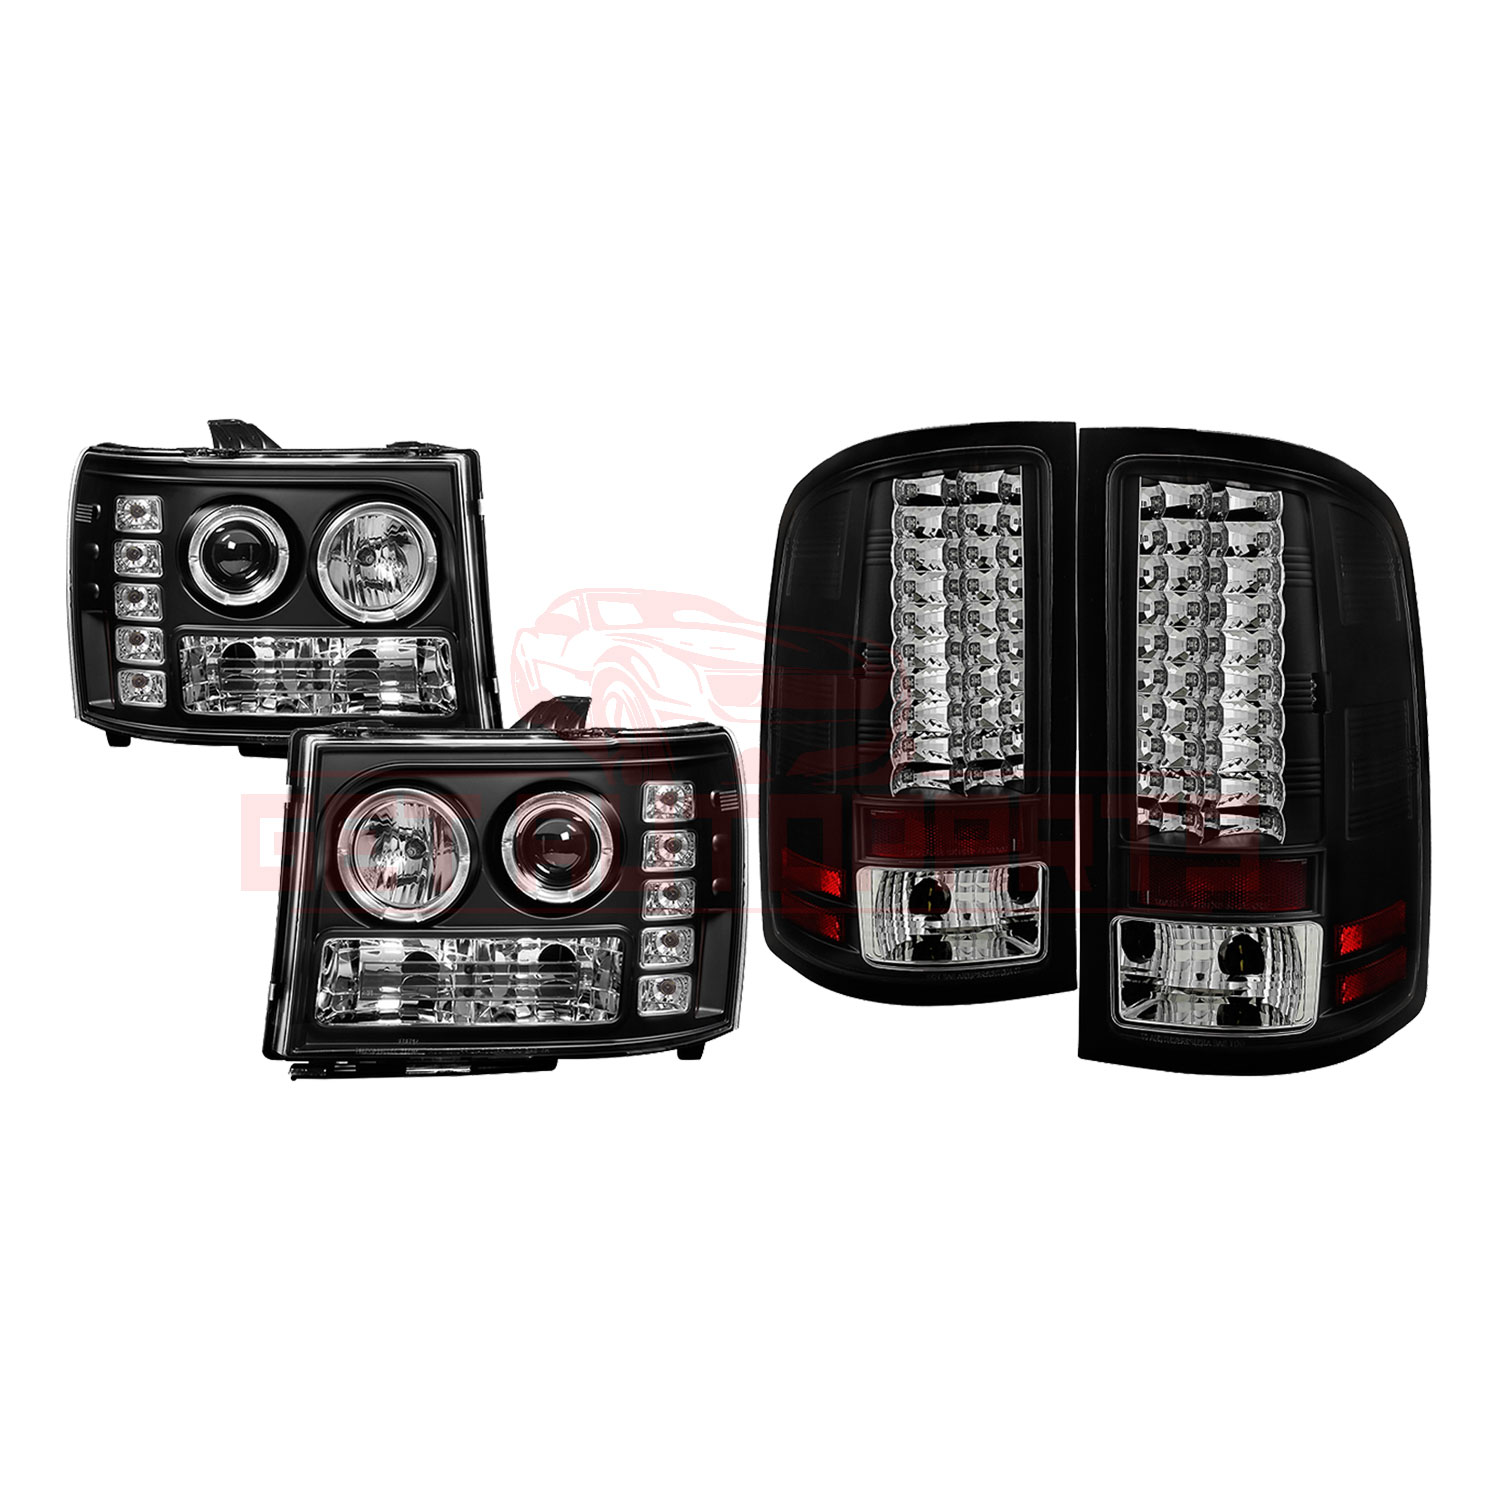 Spyder Halo LED Headlights & TailLights Blk GMC Sierra 1500 07-13, 2500HD/3500HD part in Headlight & Tail Light Covers category